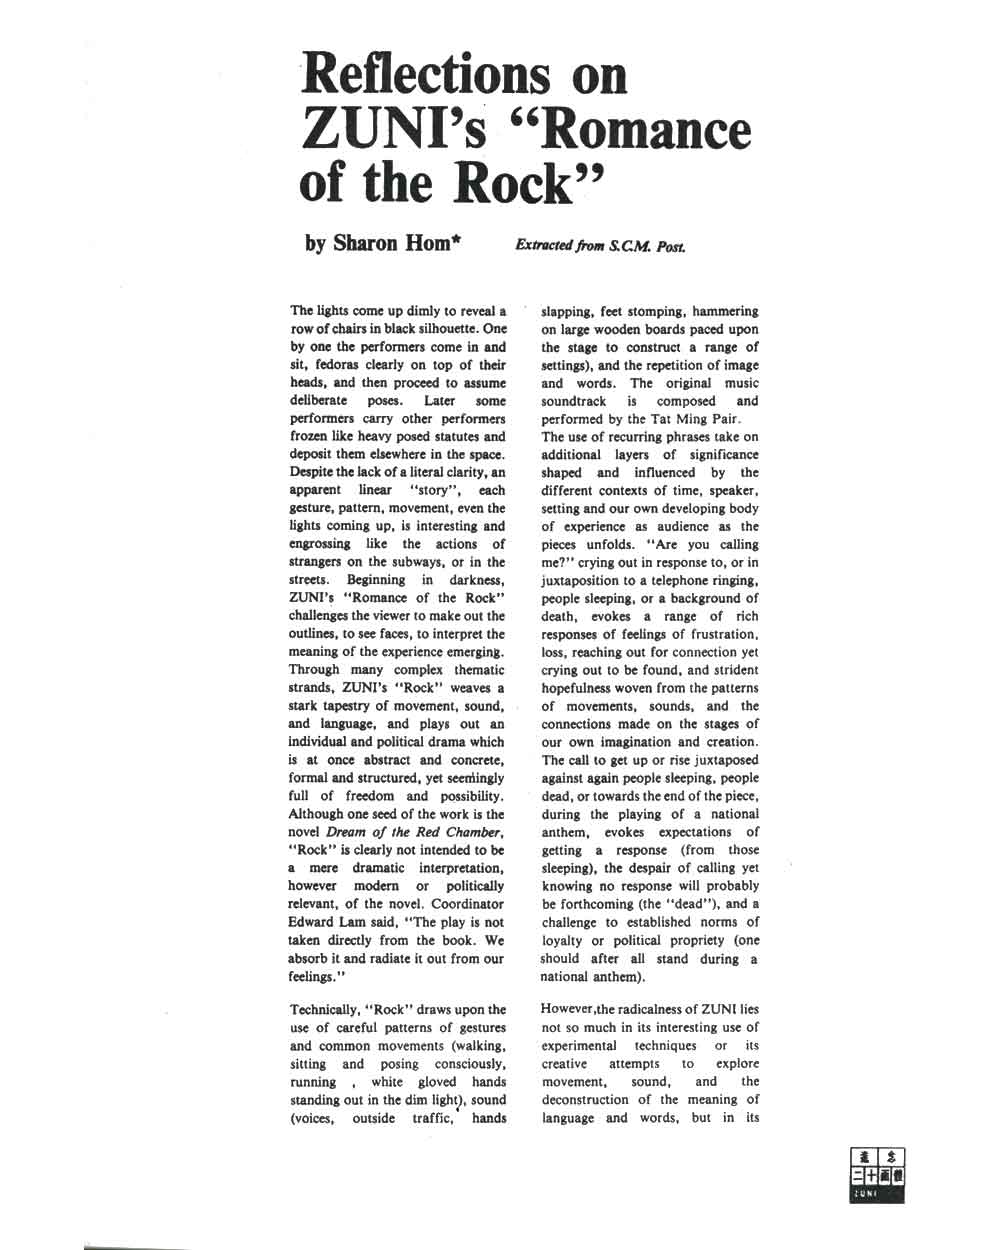 Reflections on ZUNI's 'Romance of the Rock', article, pg 1